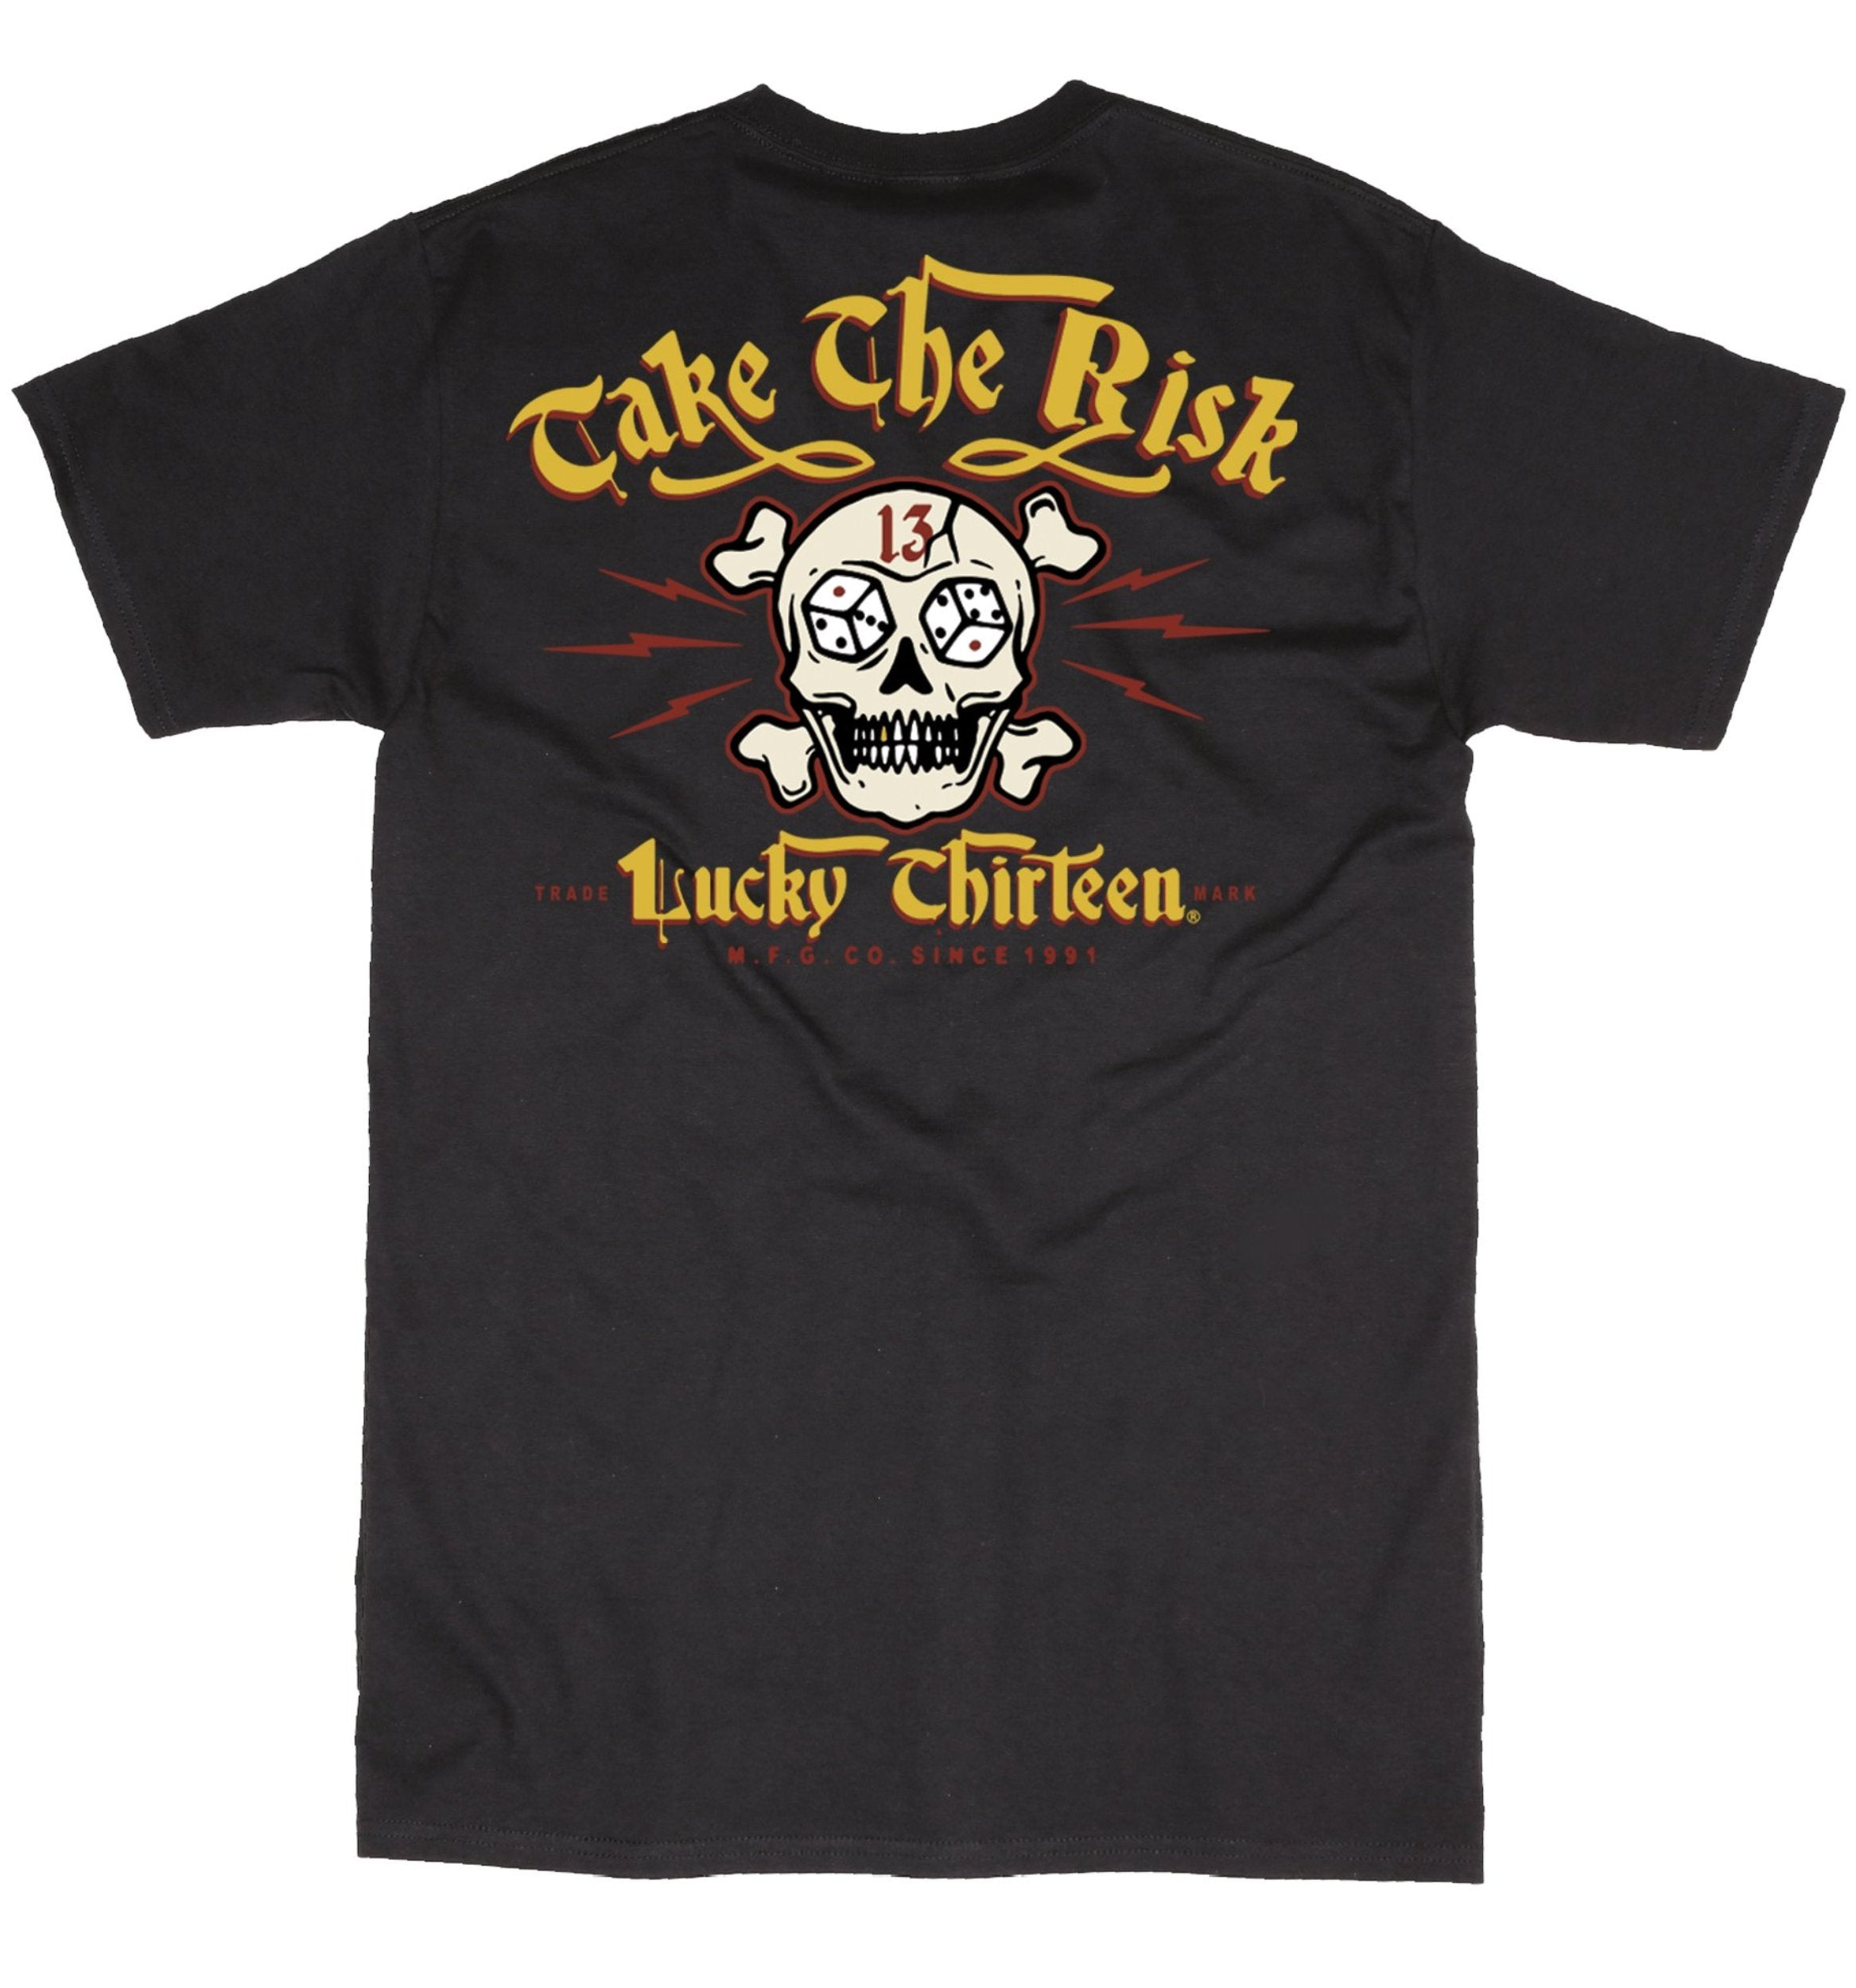 The TAKE THE RISK Tee